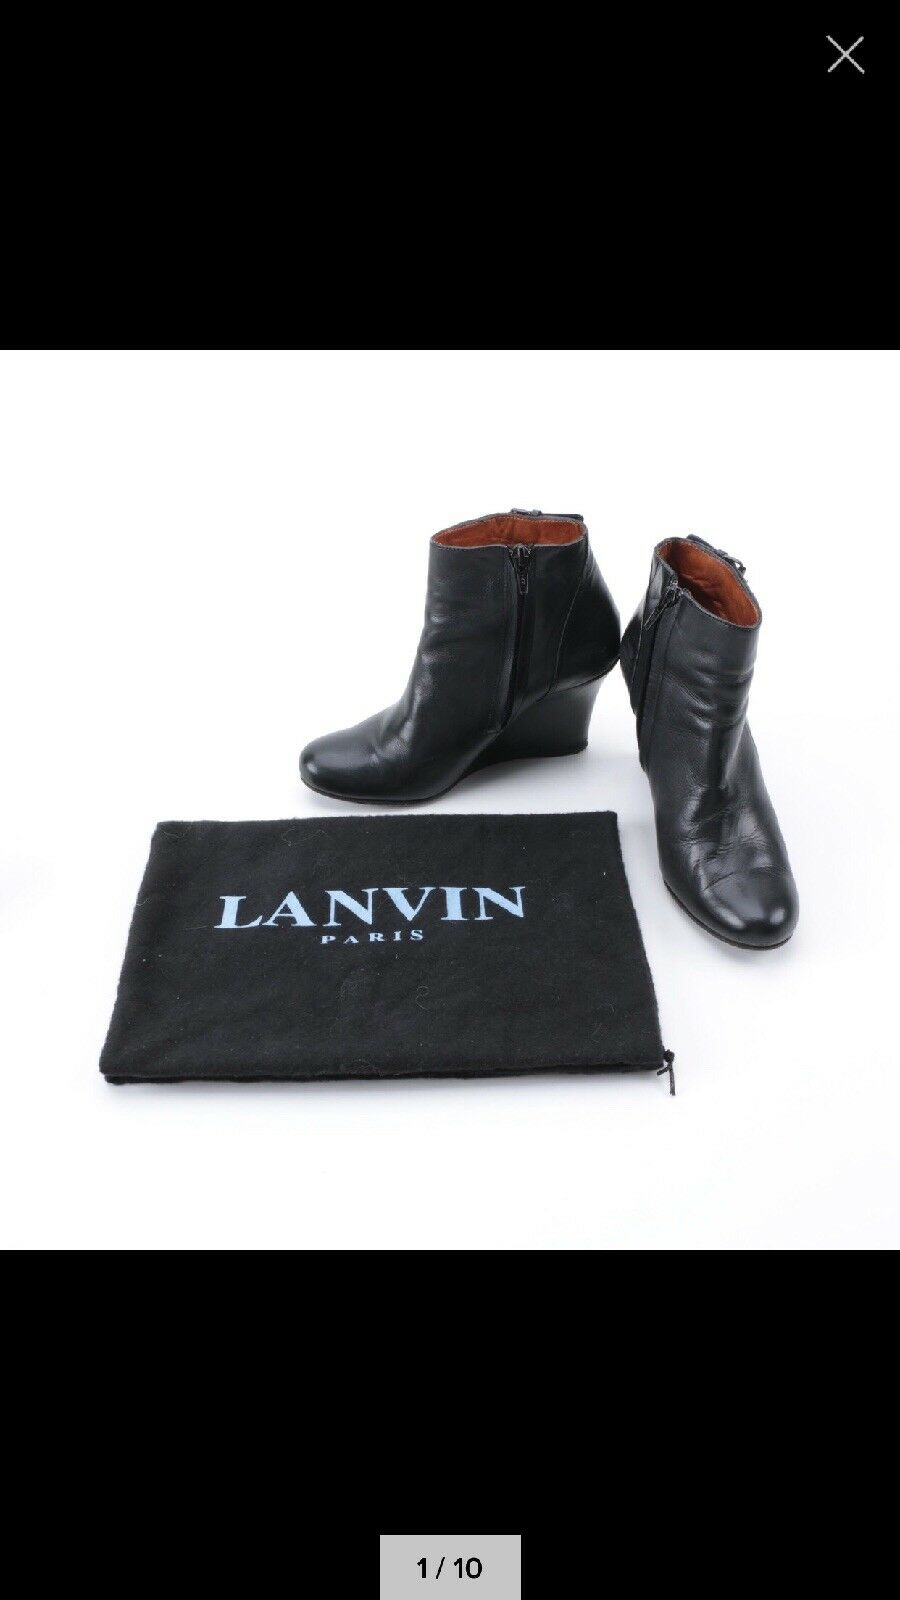 Lanvin Black Black Black Leather Buckle Top Wedge Ankle Booties size 34 New Classic  790 736fd2